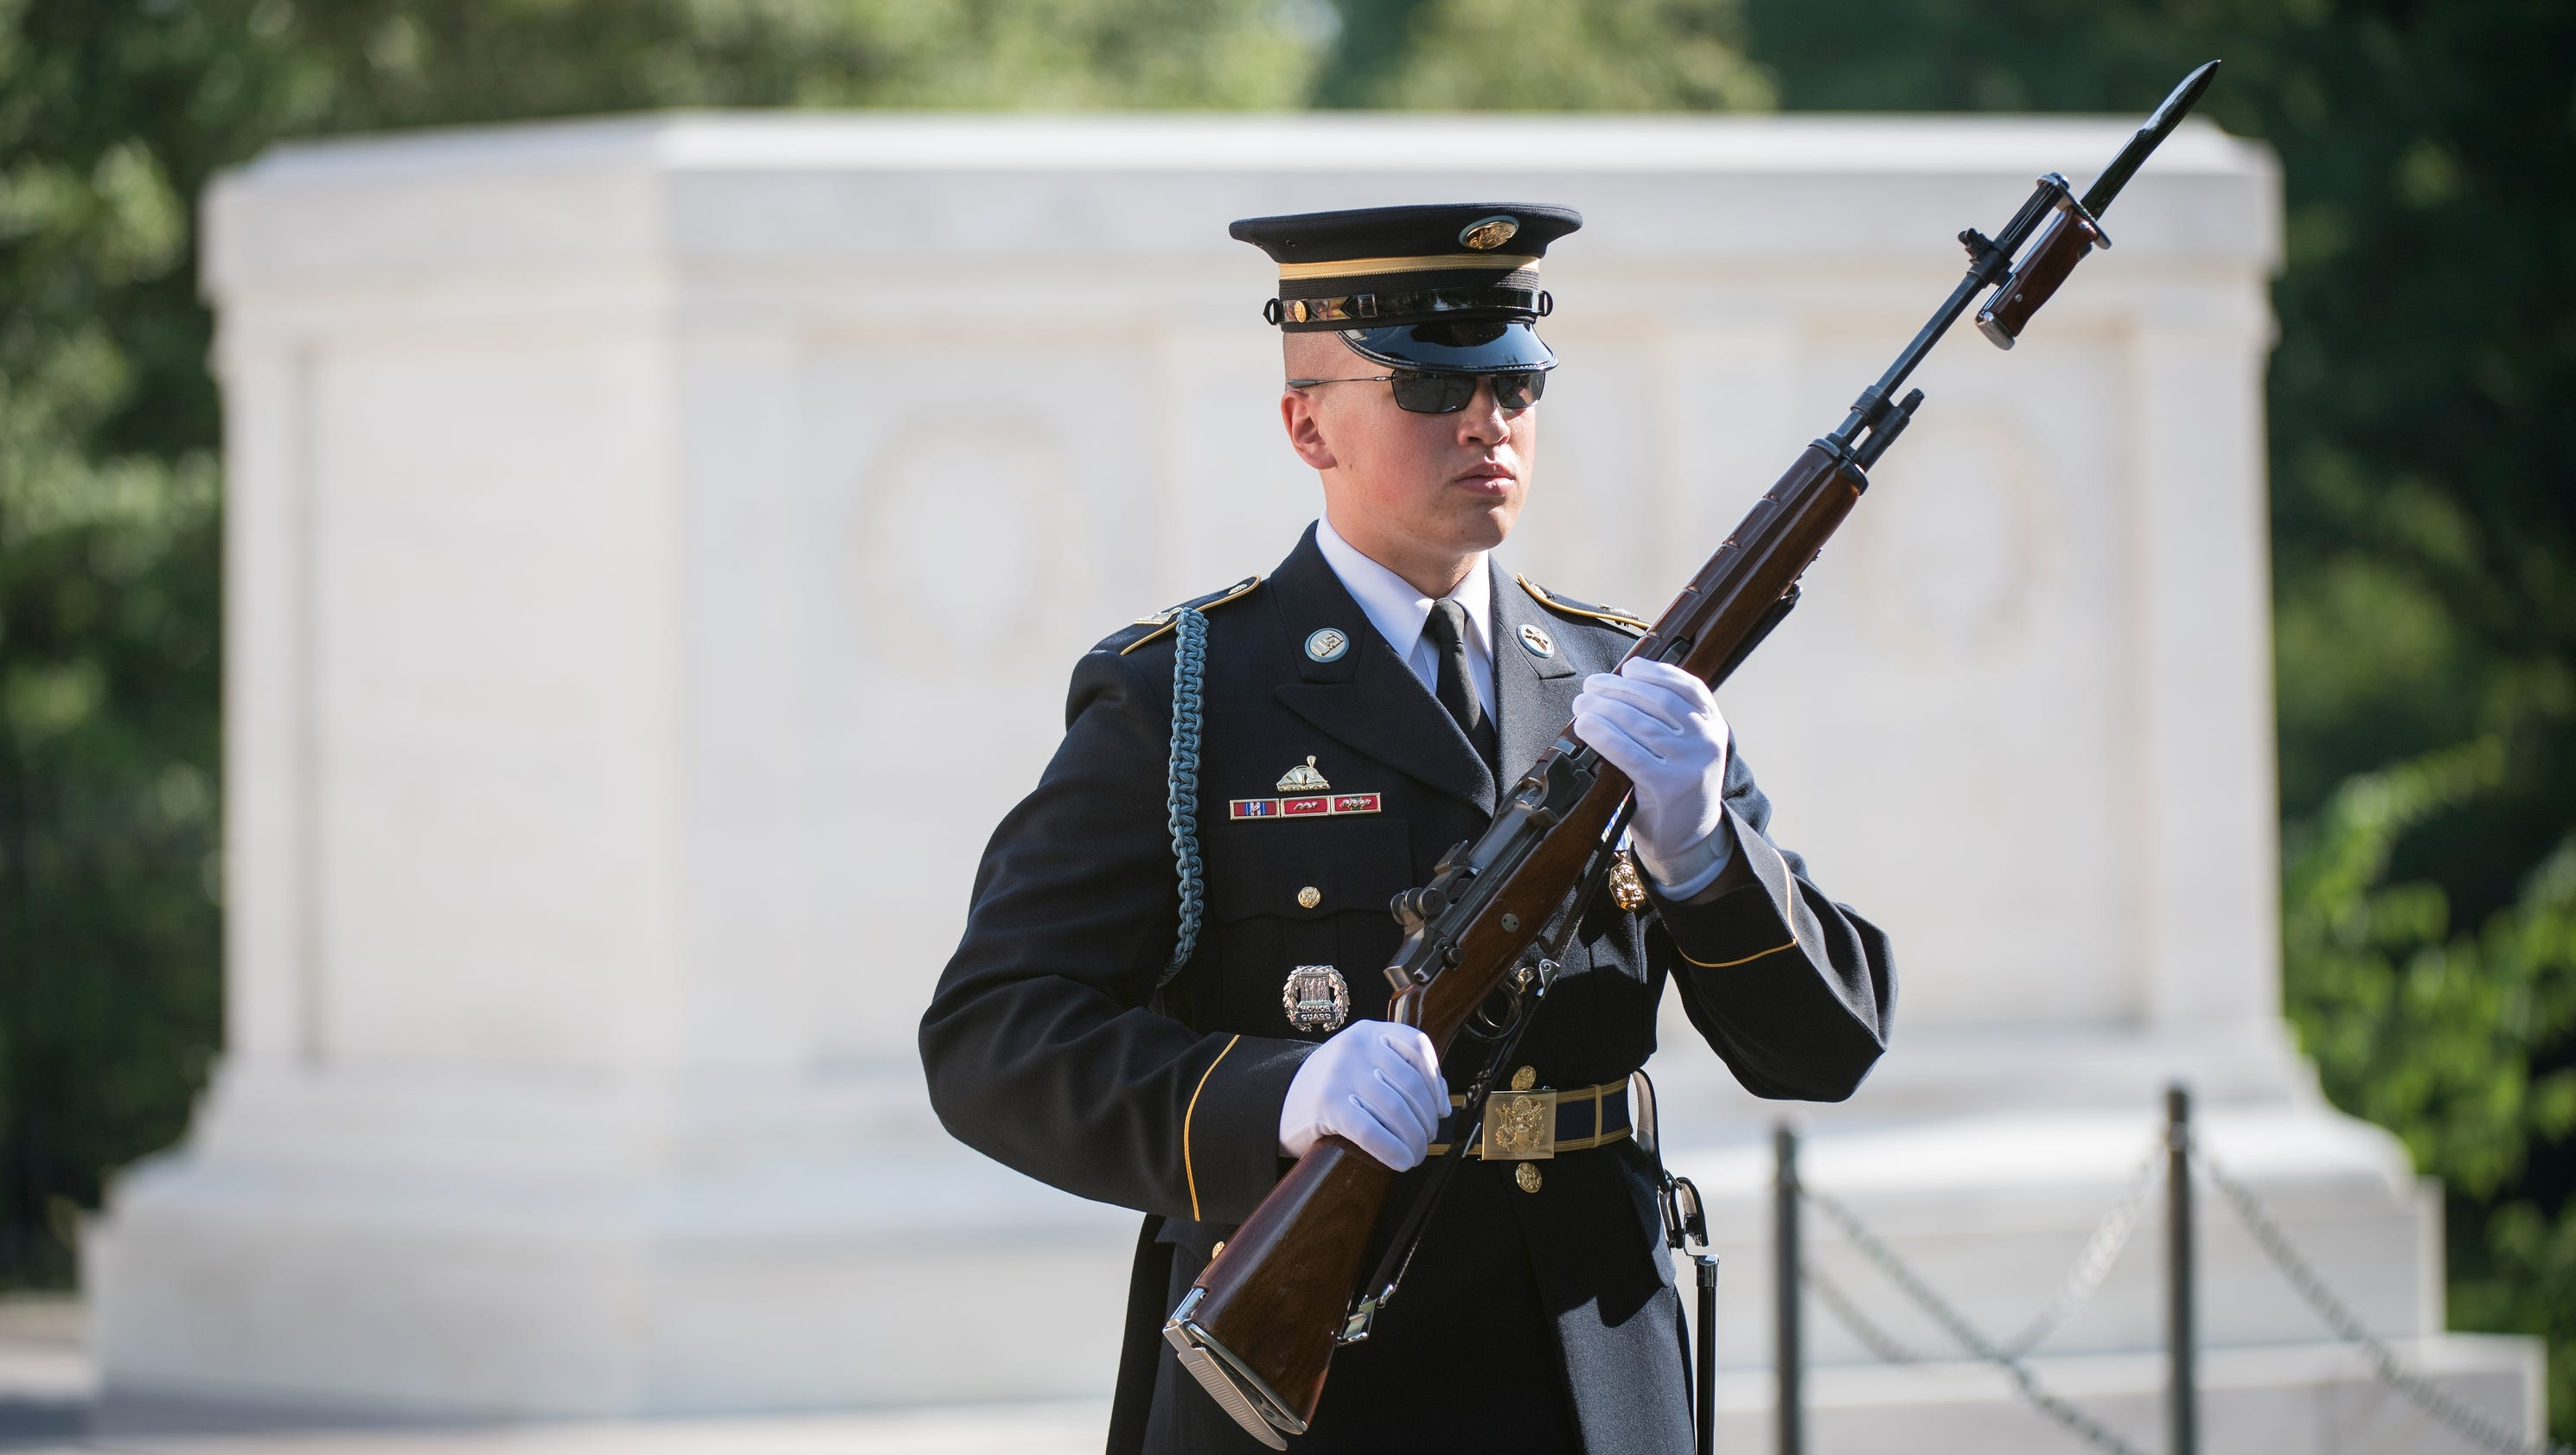 Book review Unknowns history of Tomb of Unknown Soldier